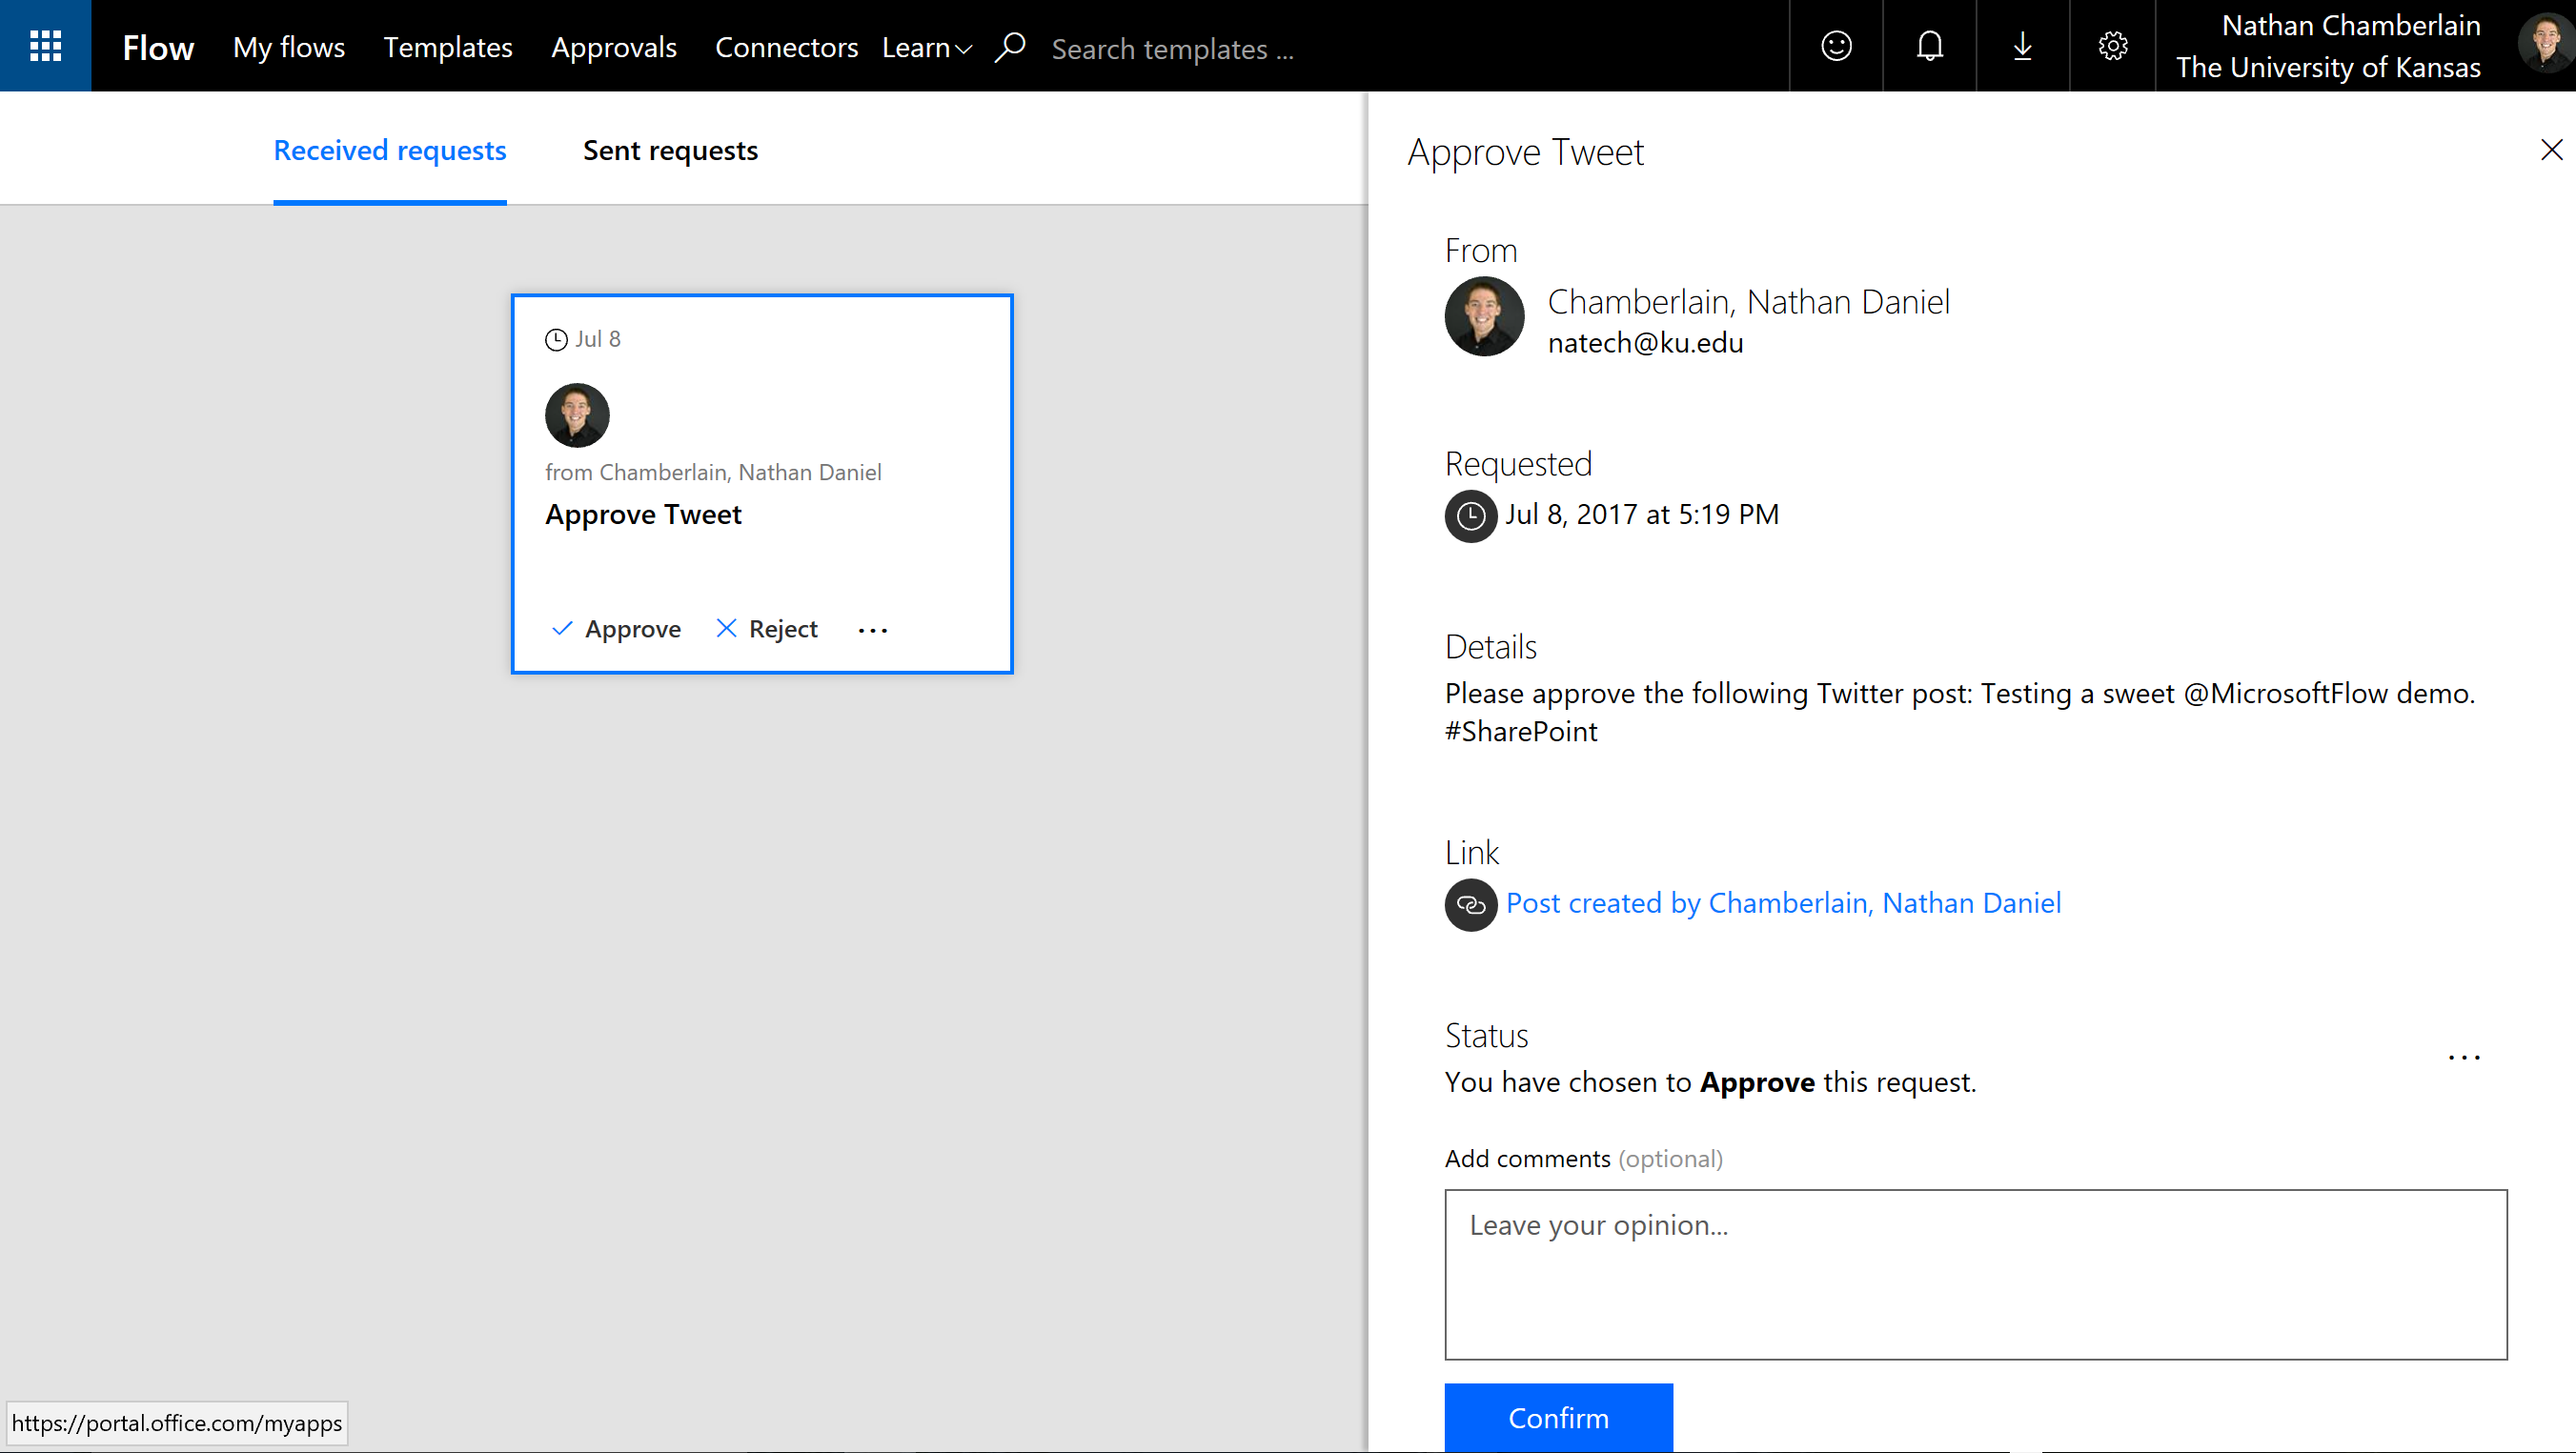 Microsoft Flow approval of Twitter tweet and Facebook post